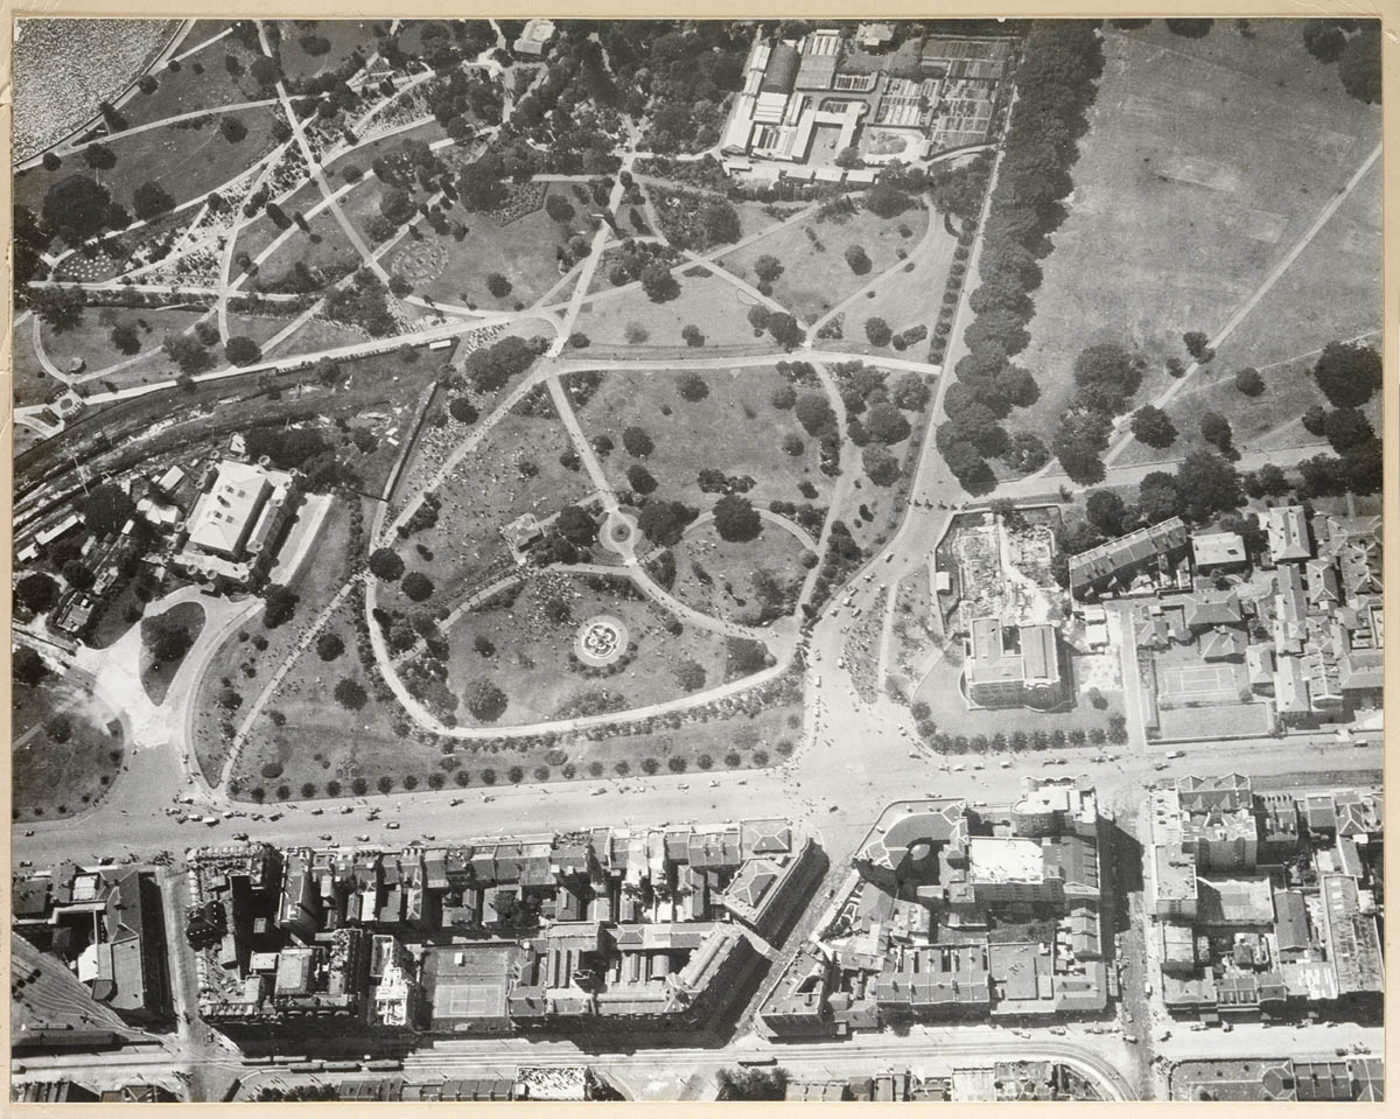 Sydney from the air, 1920 / photographed by Frank Hurley